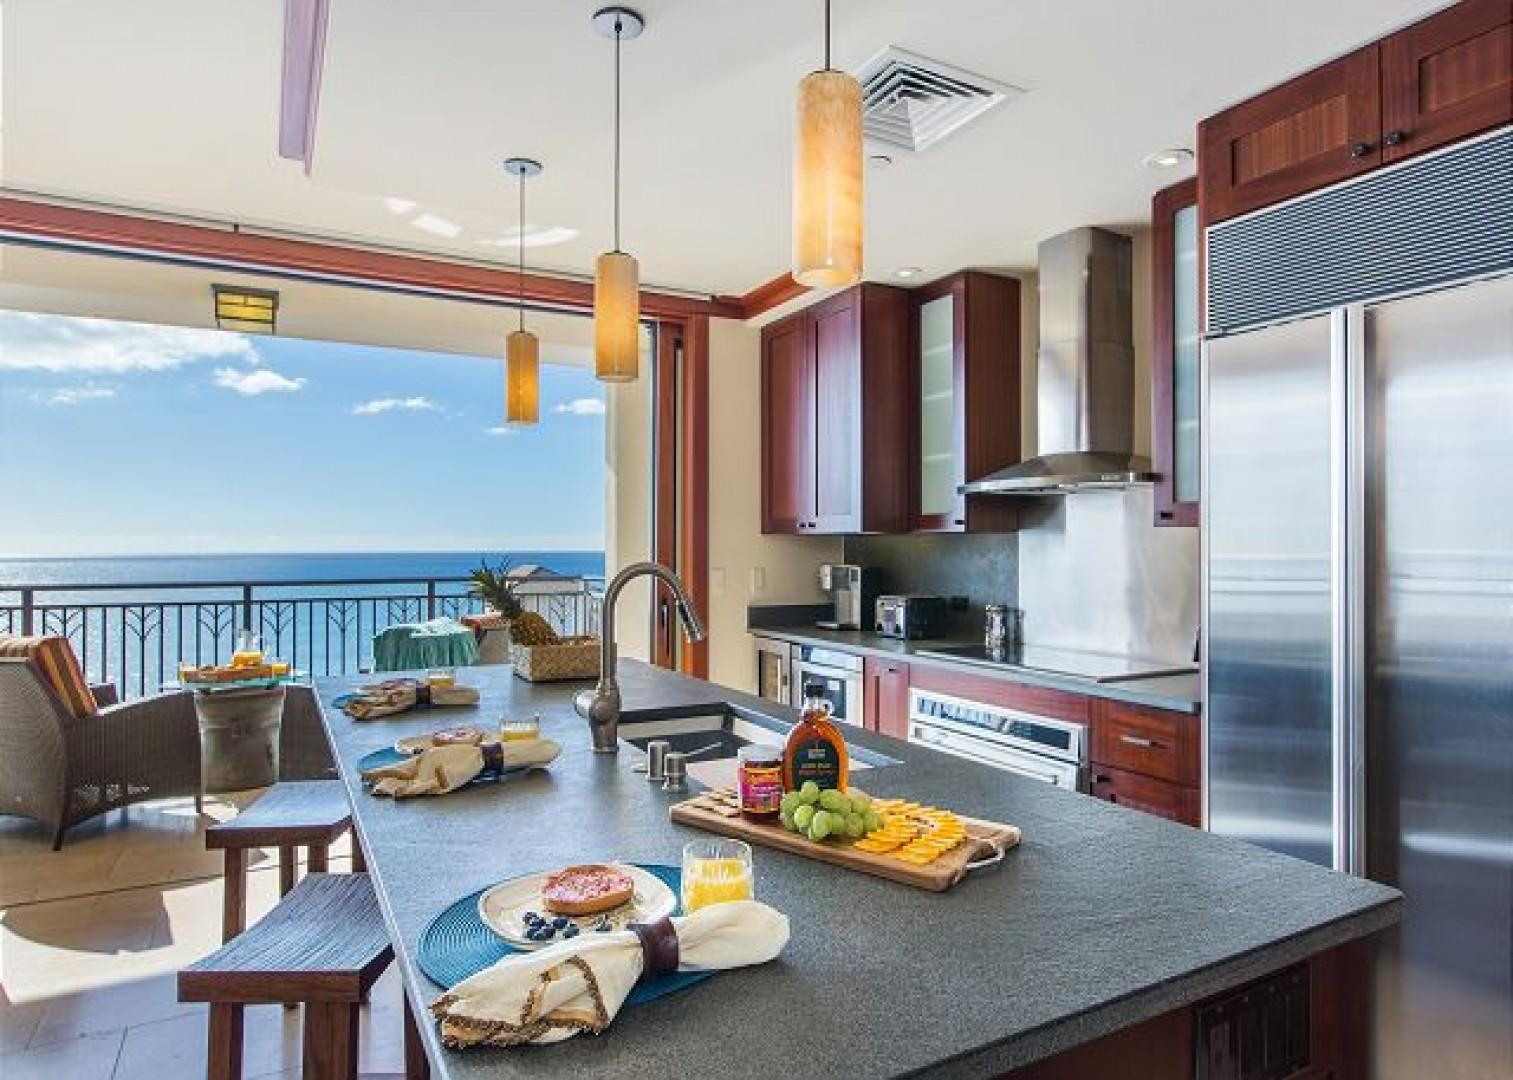 Ocean views from the kitchen